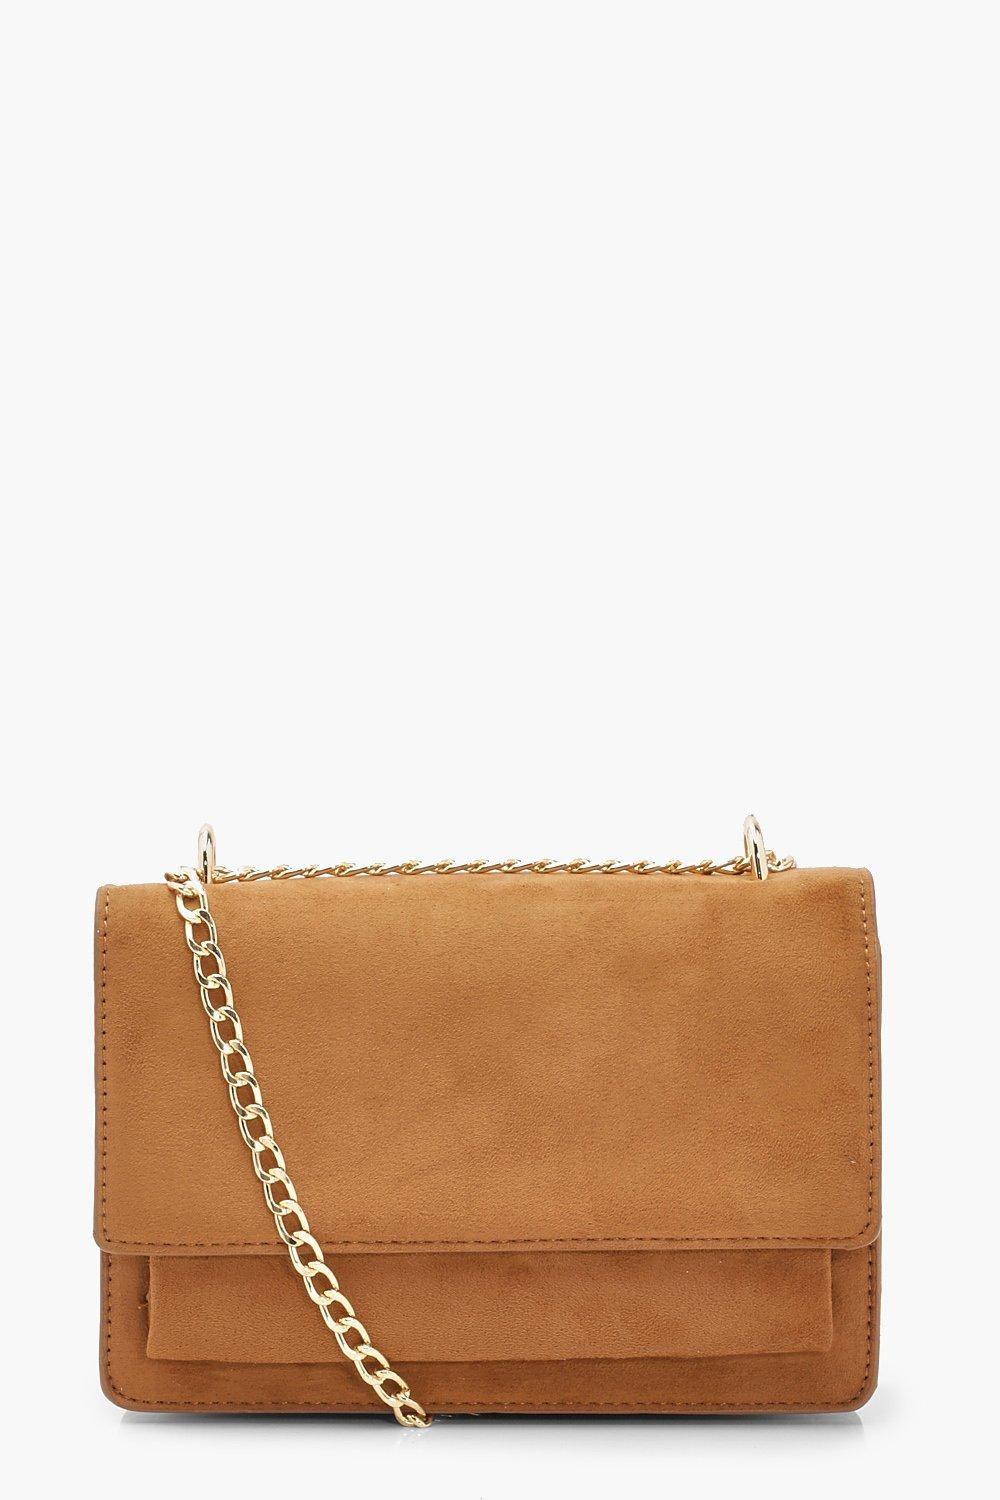 boohoo Womens Suedette Structured Cross Body Bag & Chain - Brown - One Size, Brown